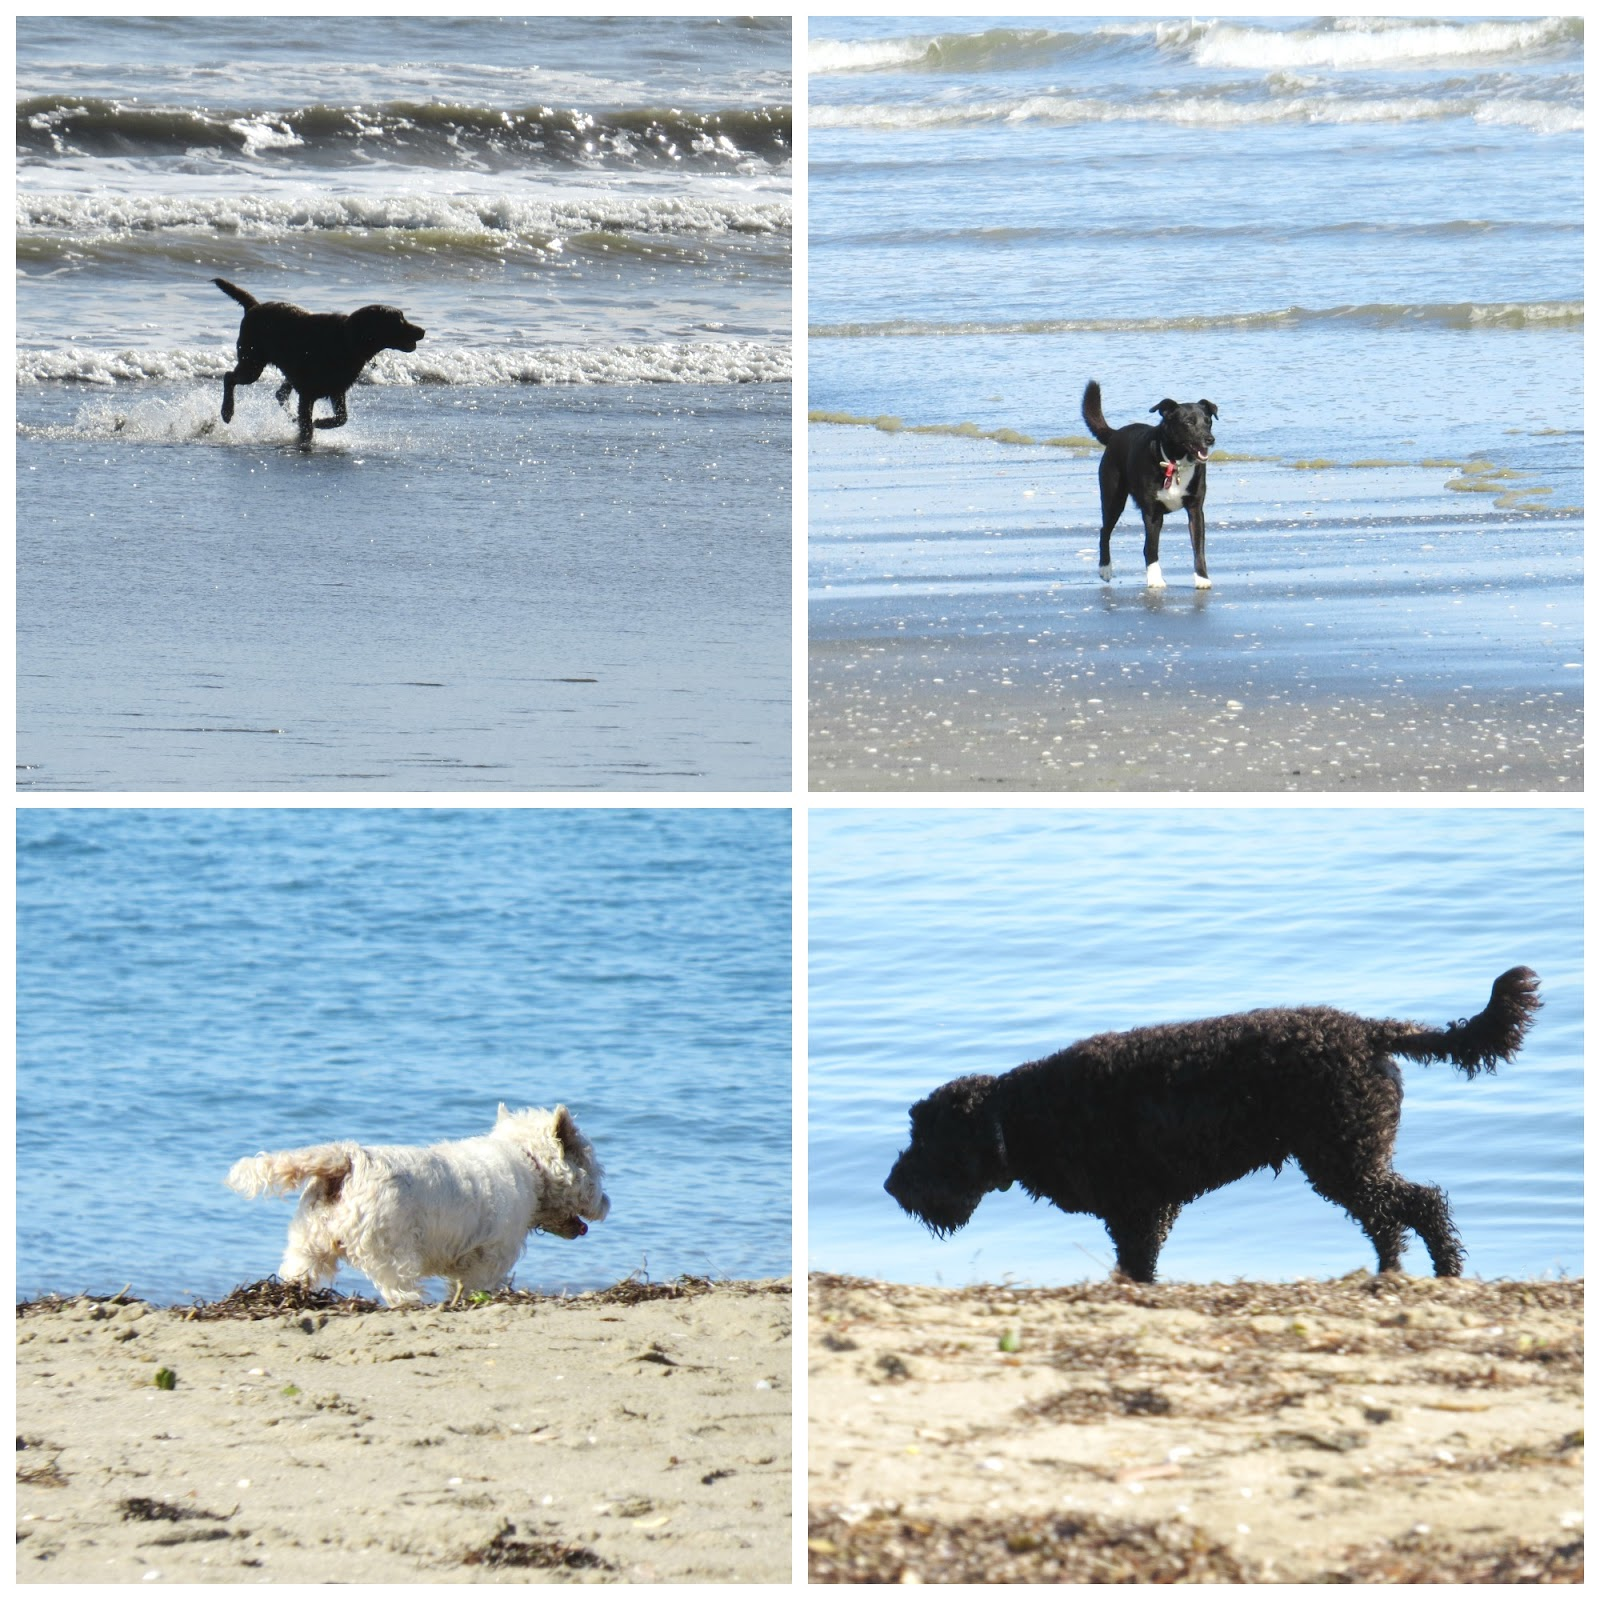 Dogs at the beach @ joceesfarm.blogspot.com